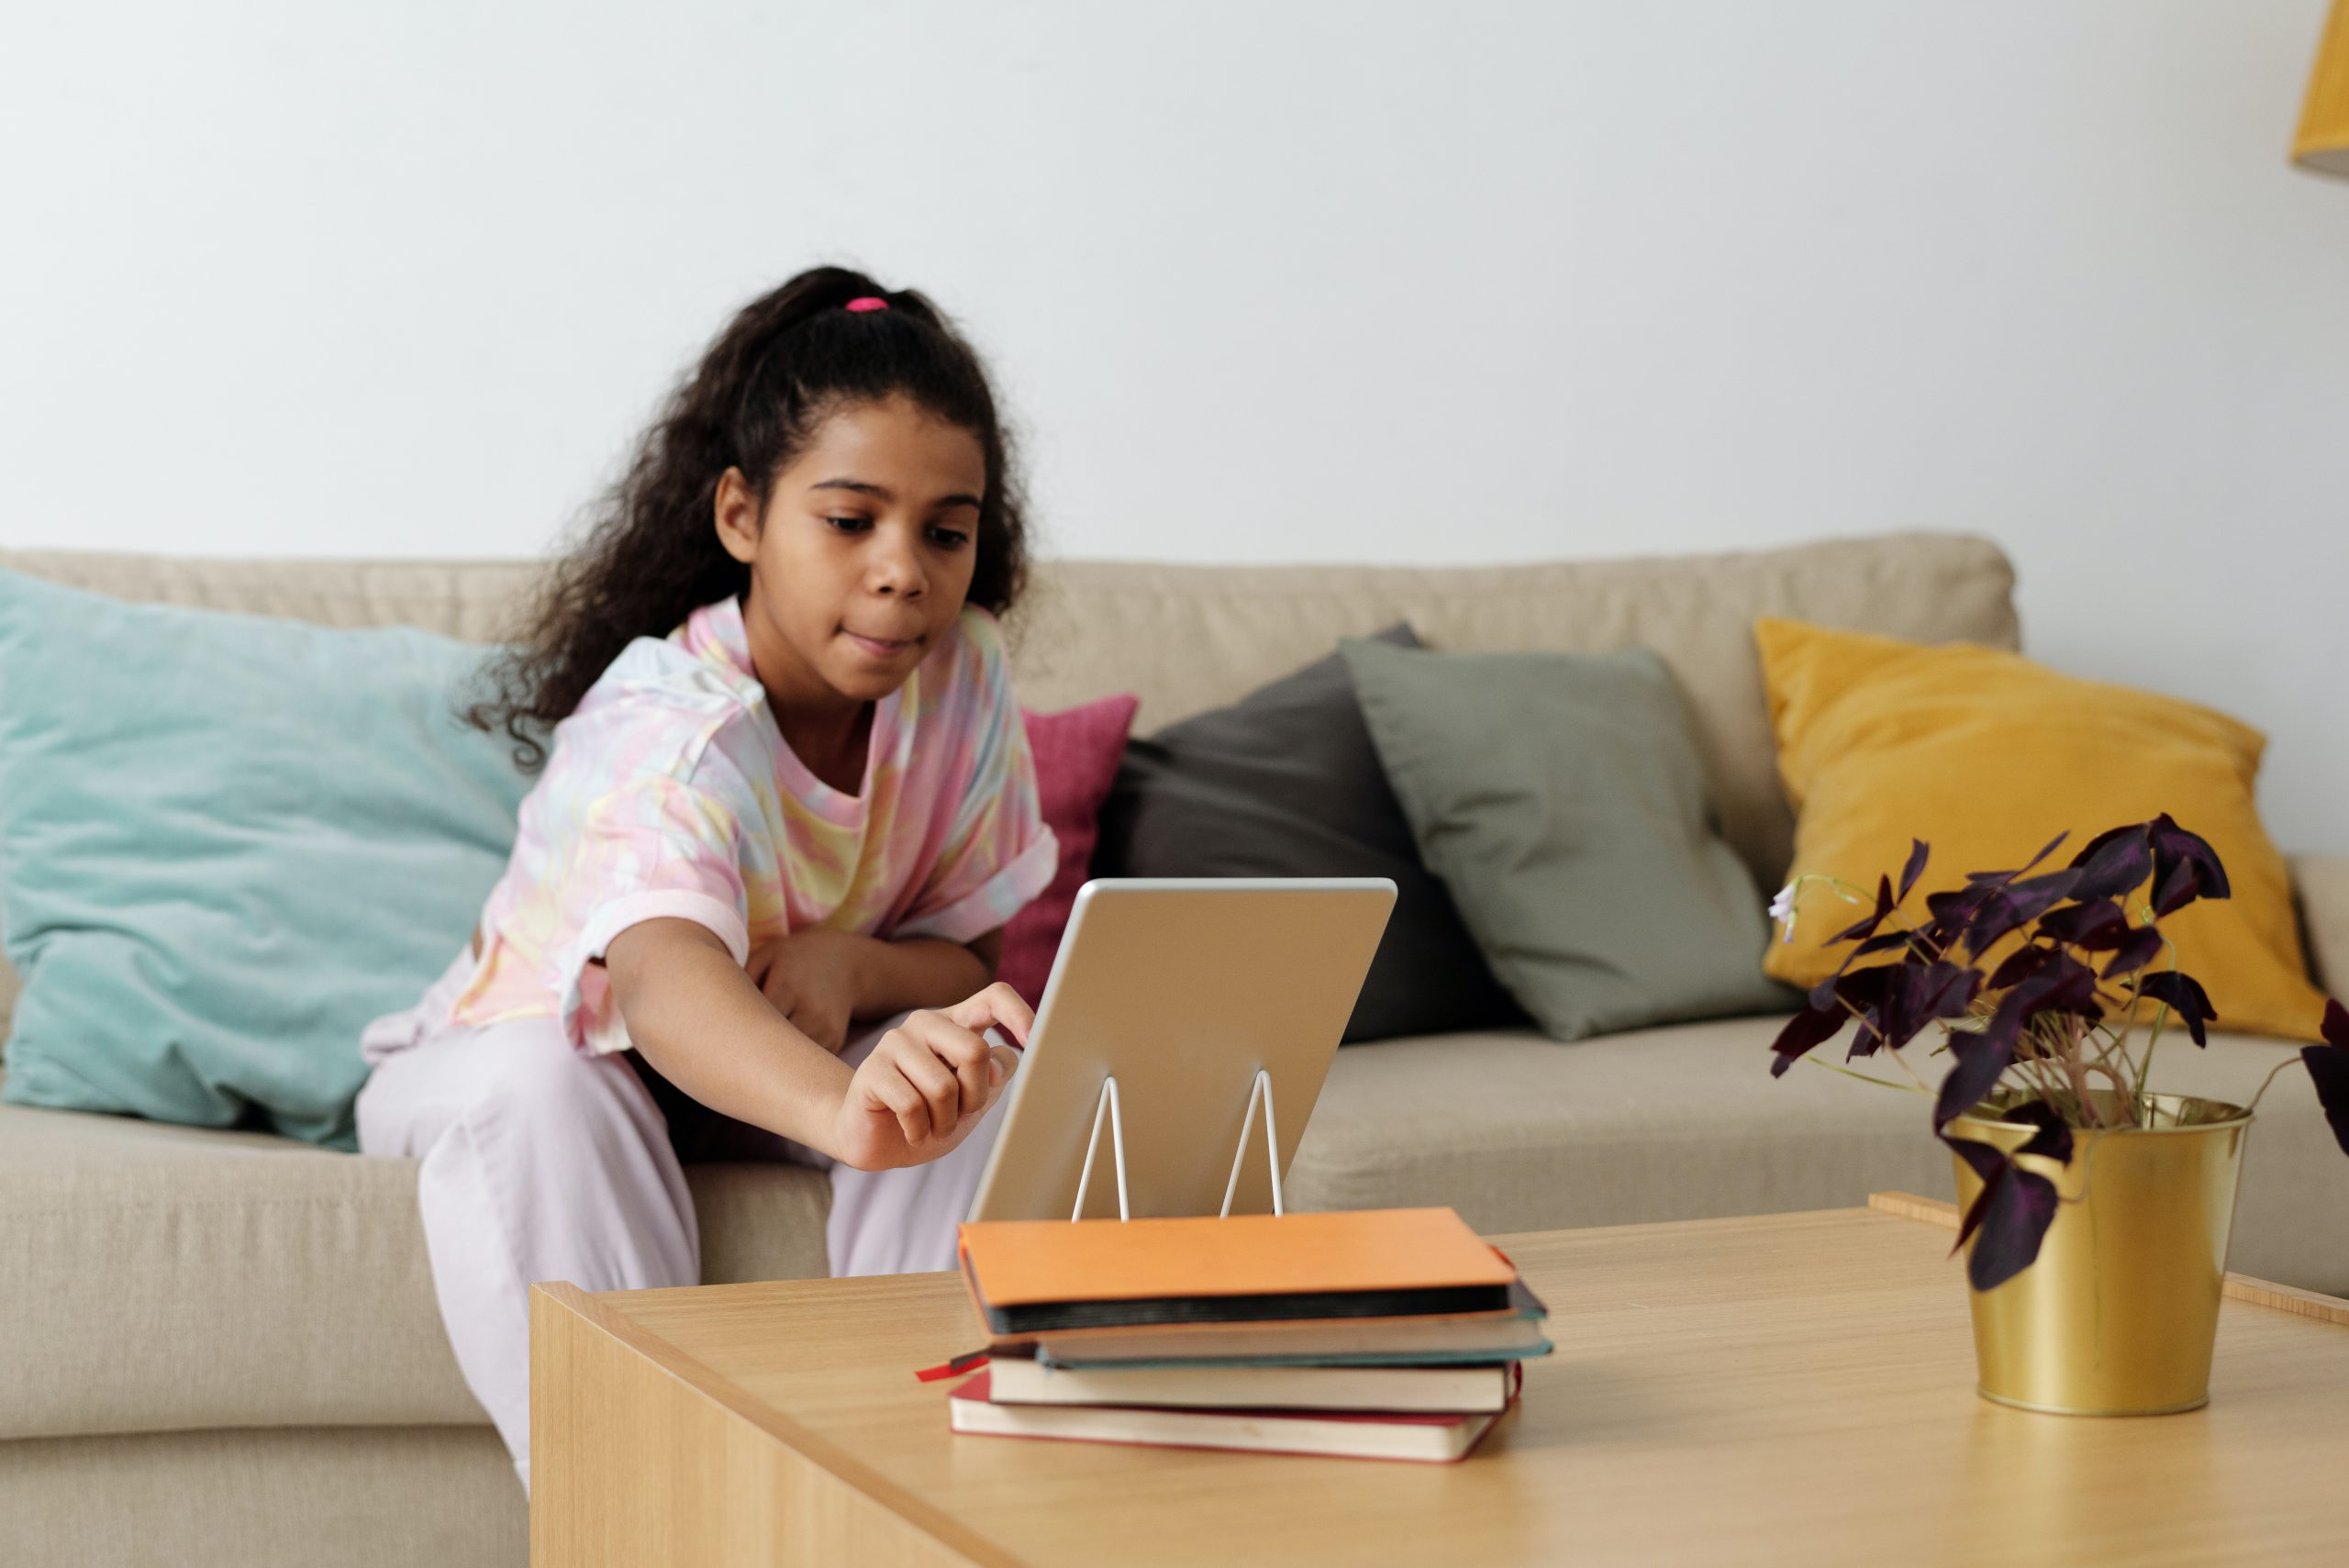 Our top 5 tips for finding online leanrning programs for kids, so you can get more work done!